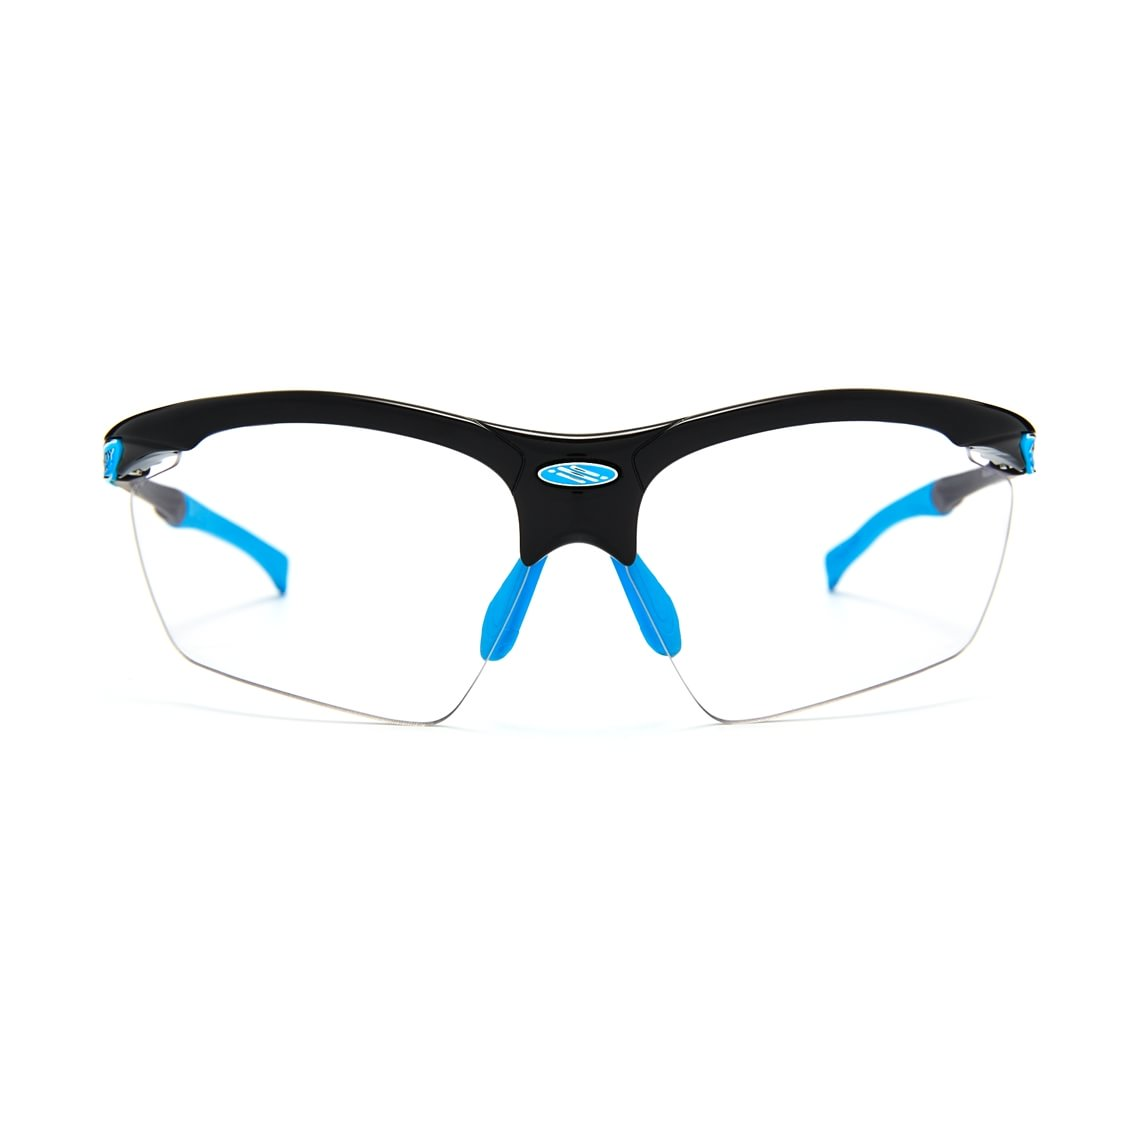 Rudy Project Agon Impact X Photochromic 2 Laser Black Impact X Photo